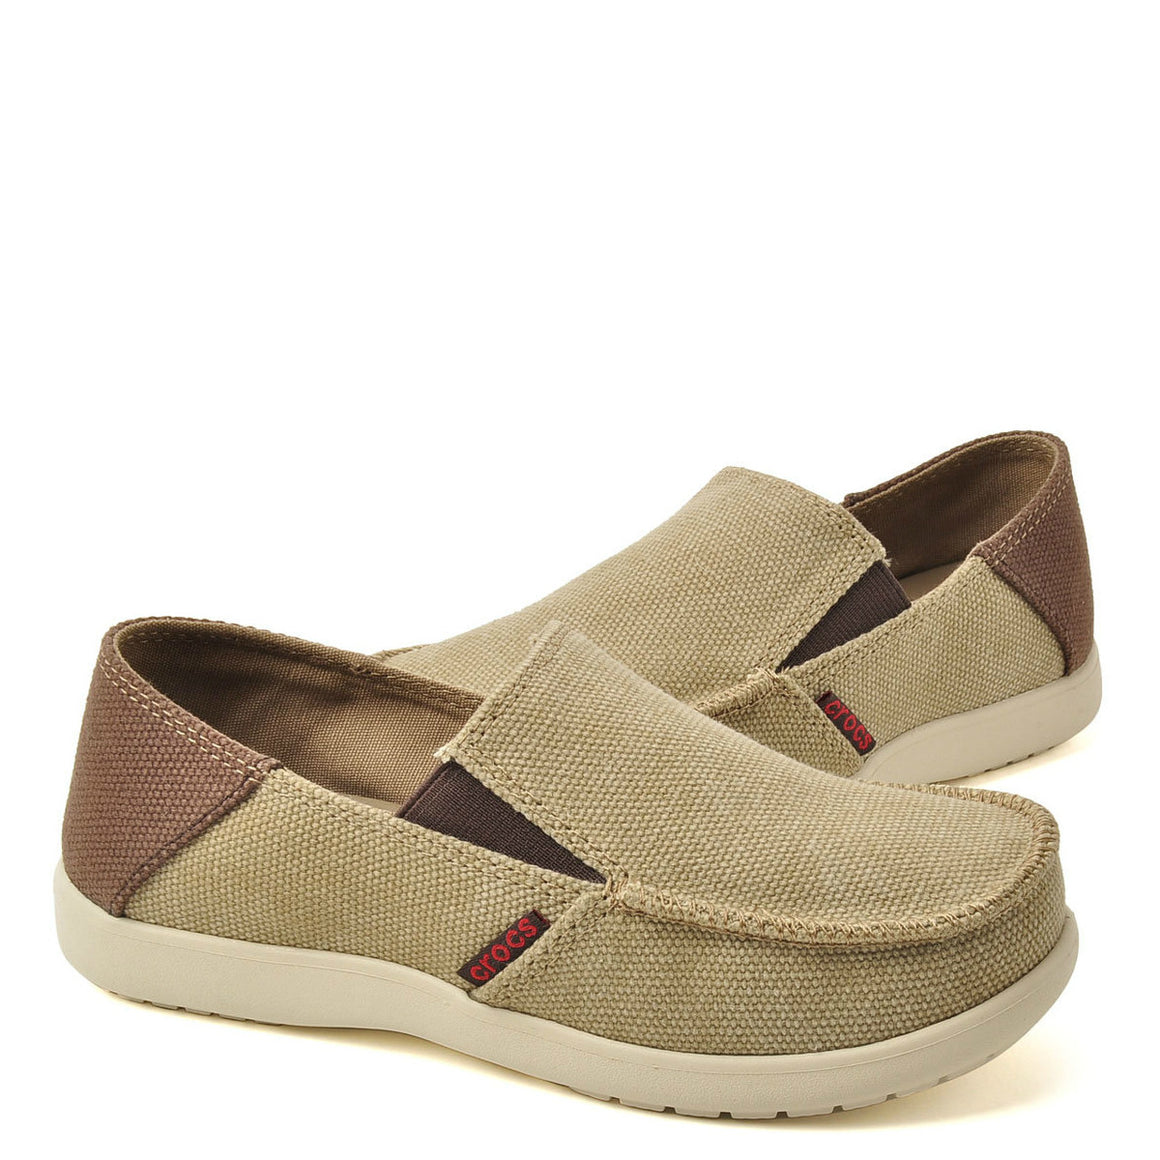 Crocs Kid's Santa Cruz Canvas Loafer - Khaki/Espresso 15576-23G - ShoeShackOnline